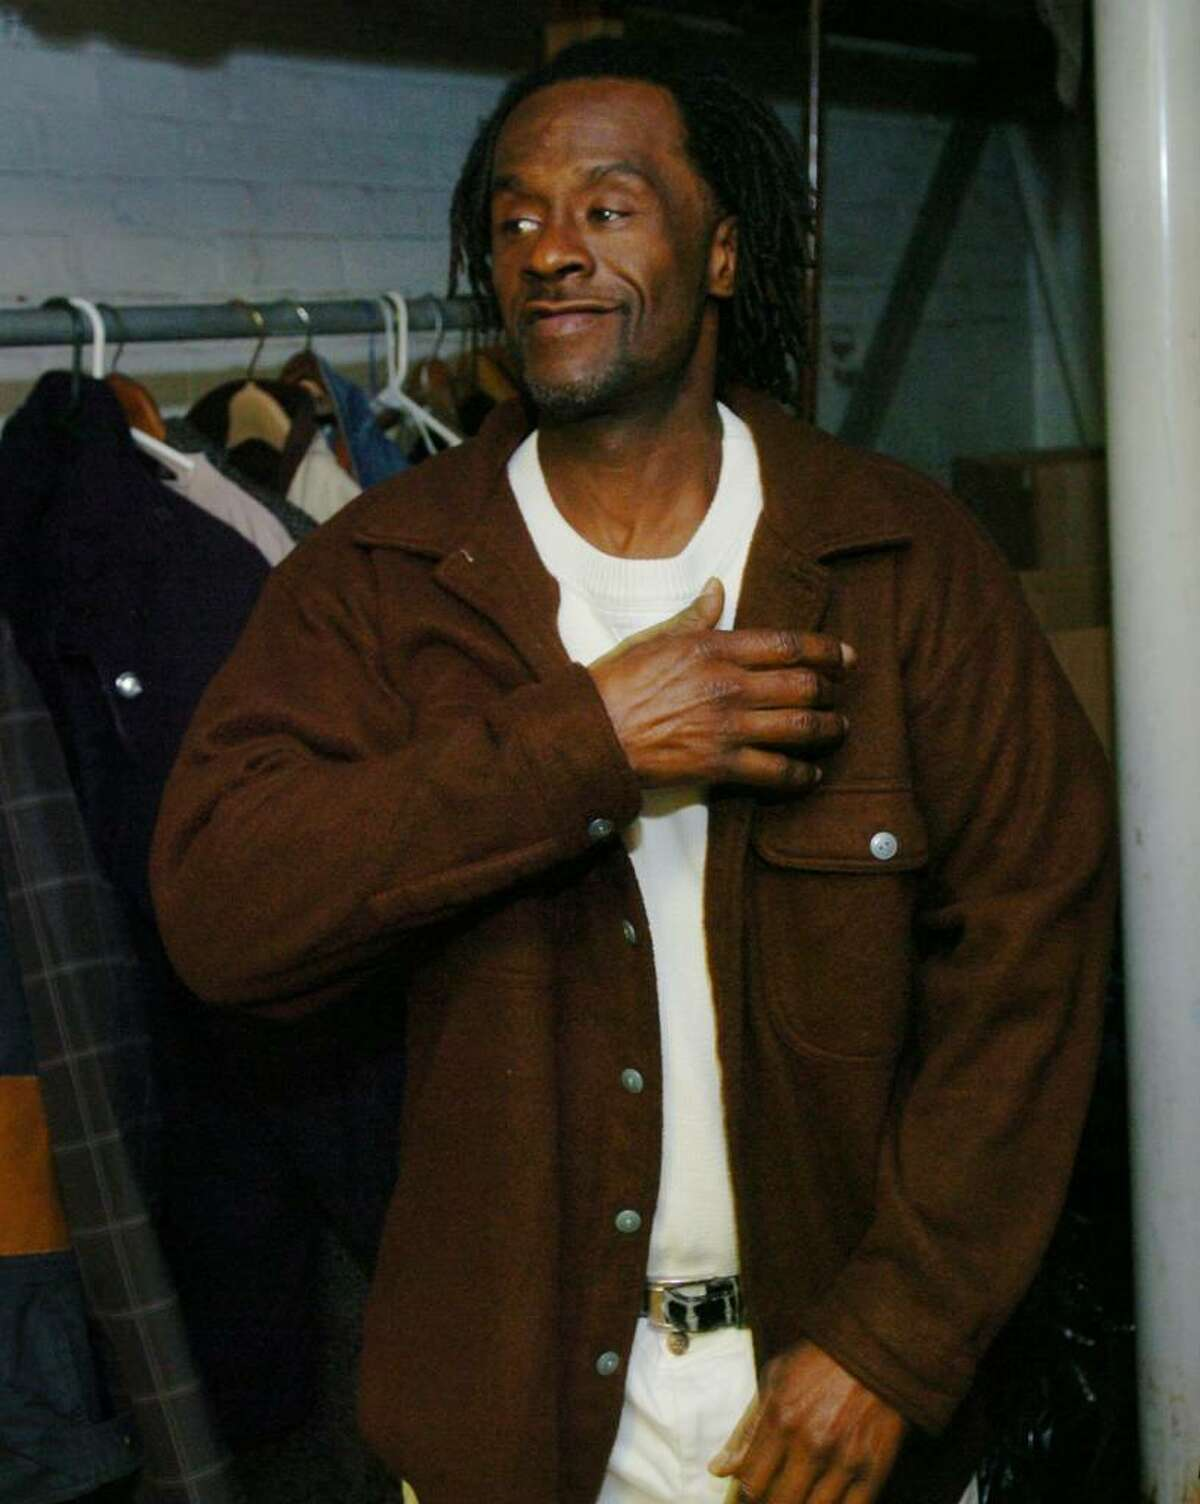 Dennis Boyd of Bridgeport tries on a coat at the Bridgeport Rescue Mission at 1088 Fairfield Avenue in Bridgeport recently.